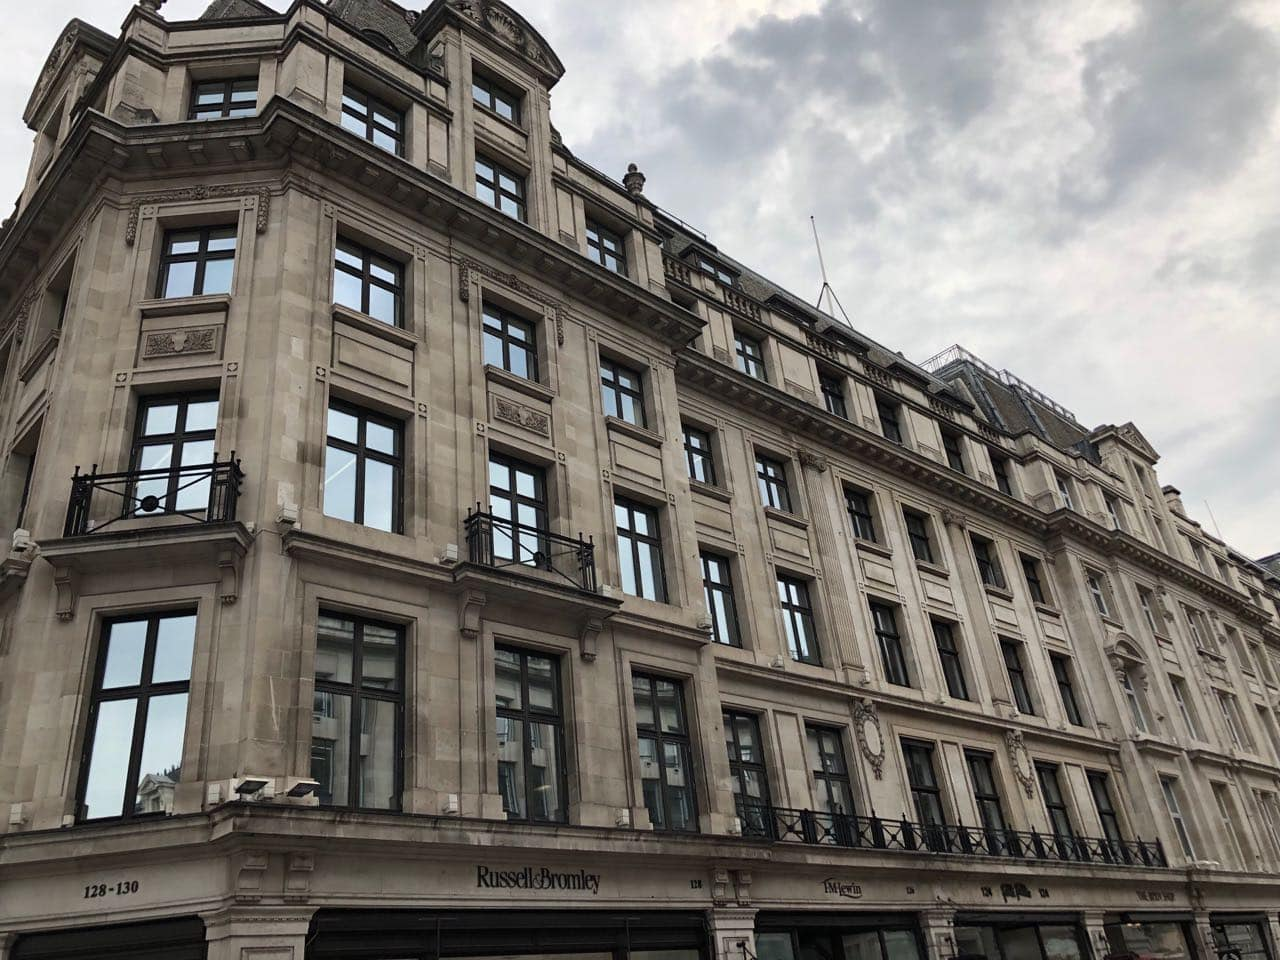 Regent Street Offices commercial painting project